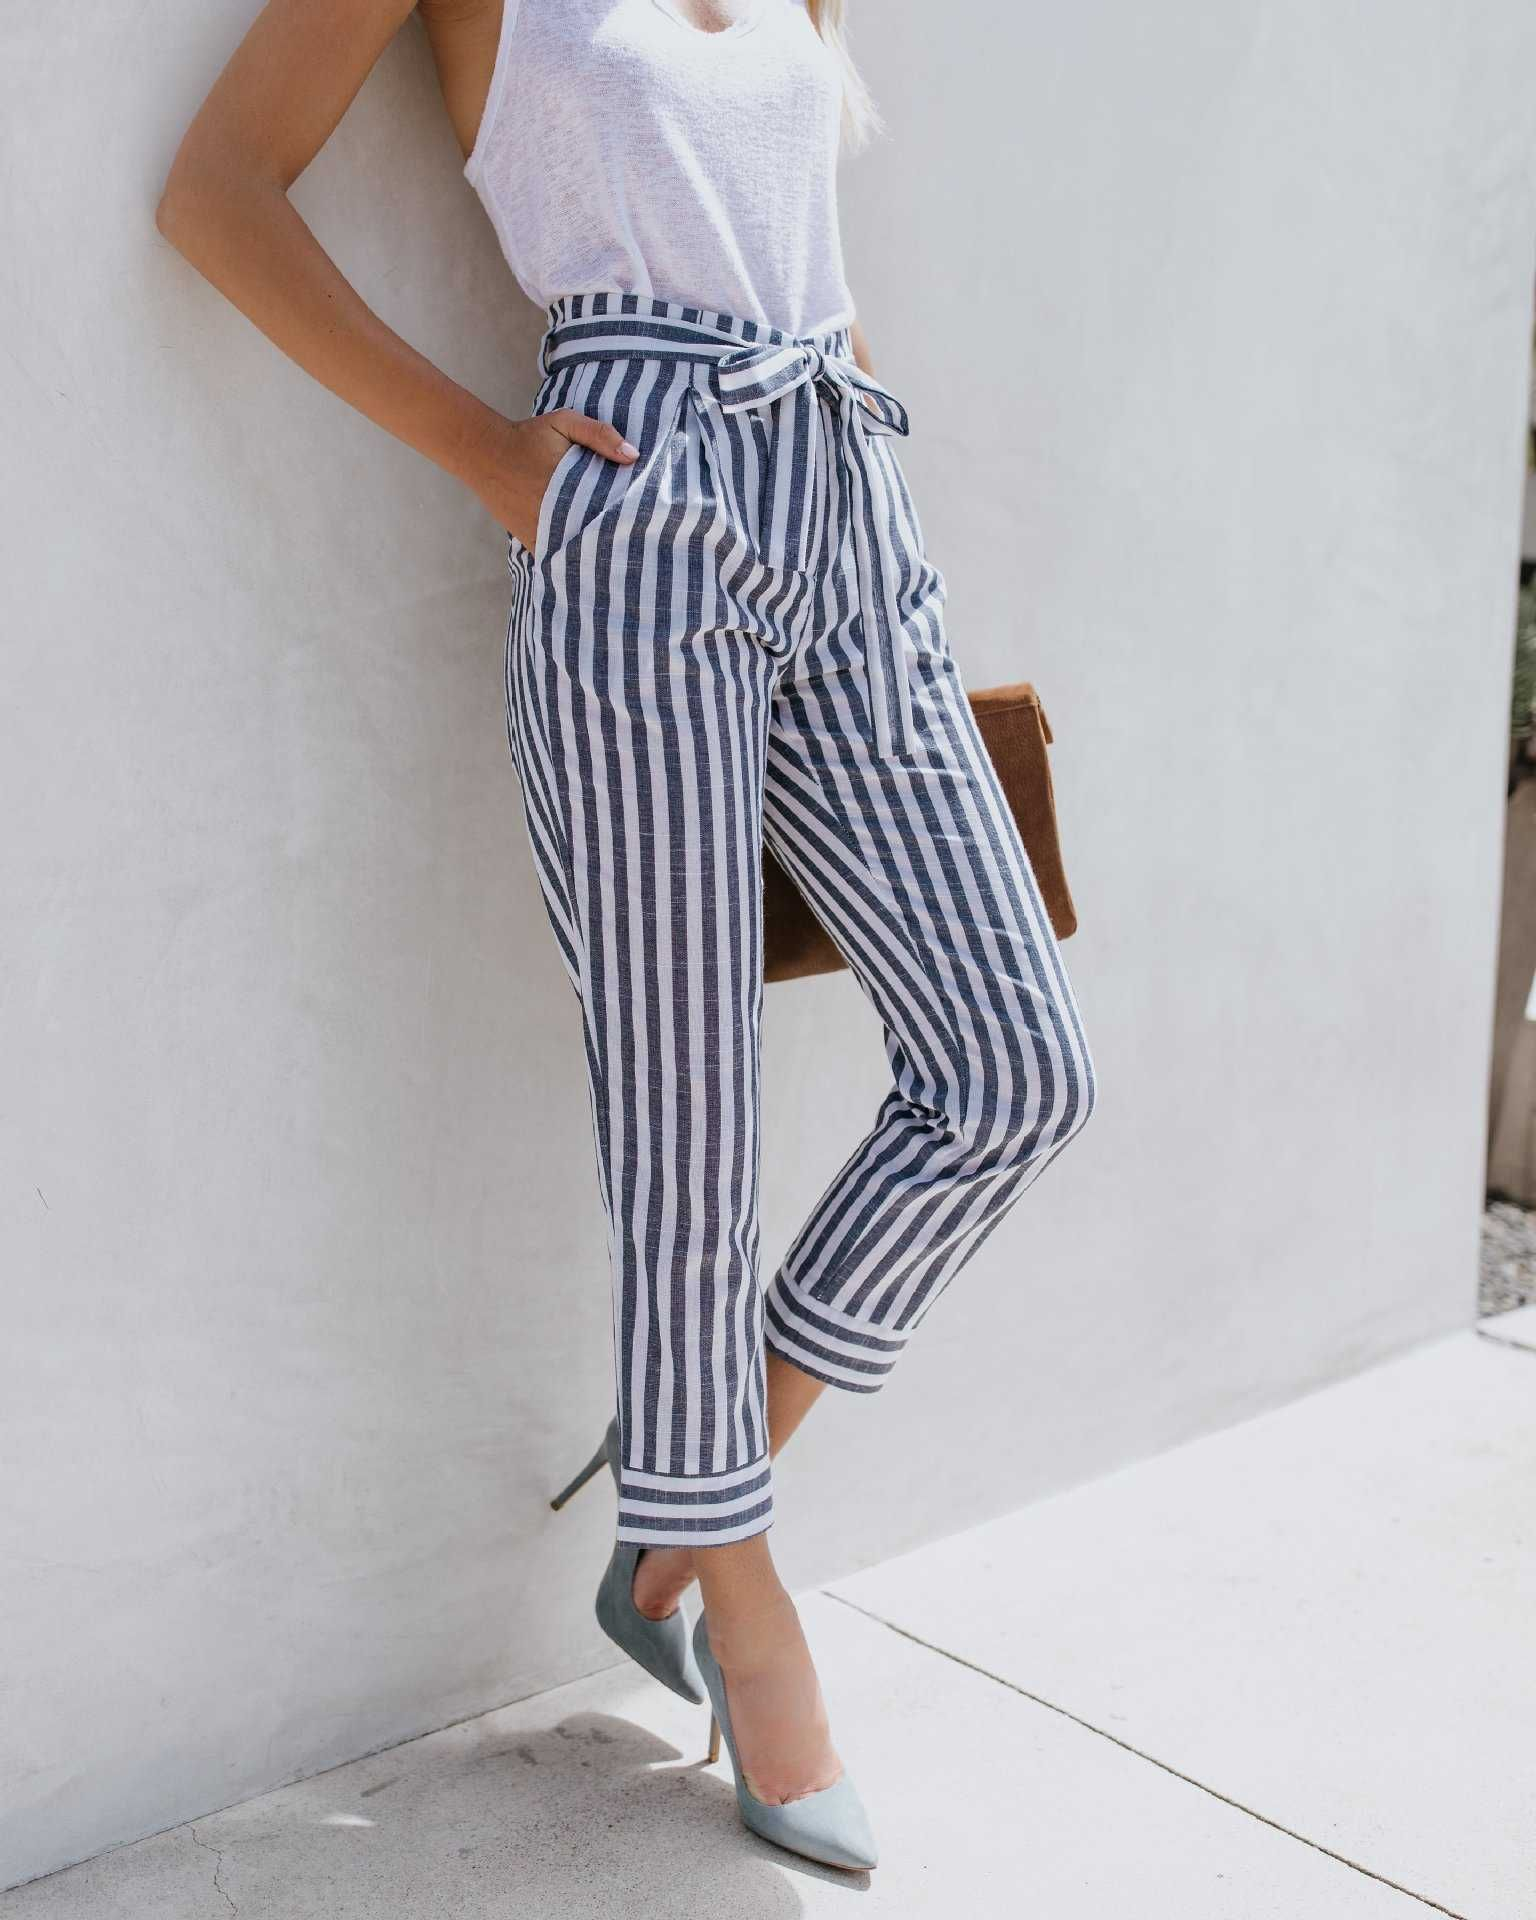 965c6dcc36 Halloween Free Shipping Sale and extra 10% off Now slimming black belted trousers  high waisted skinny pants with white and black stripe paperbag waist ...